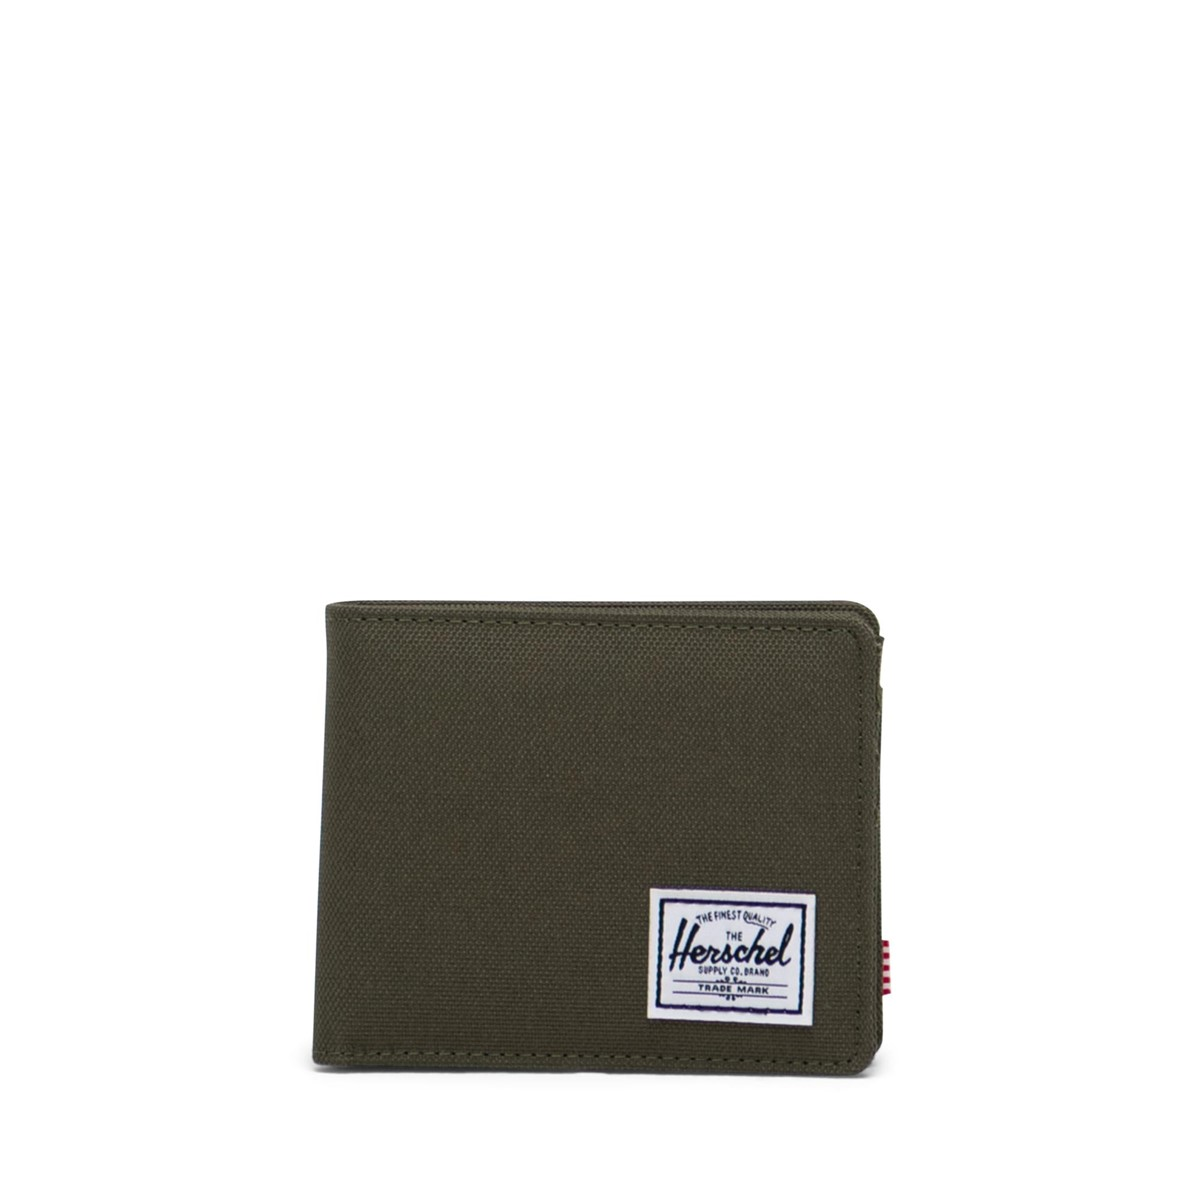 Roy Coin Wallet in Ivy Green